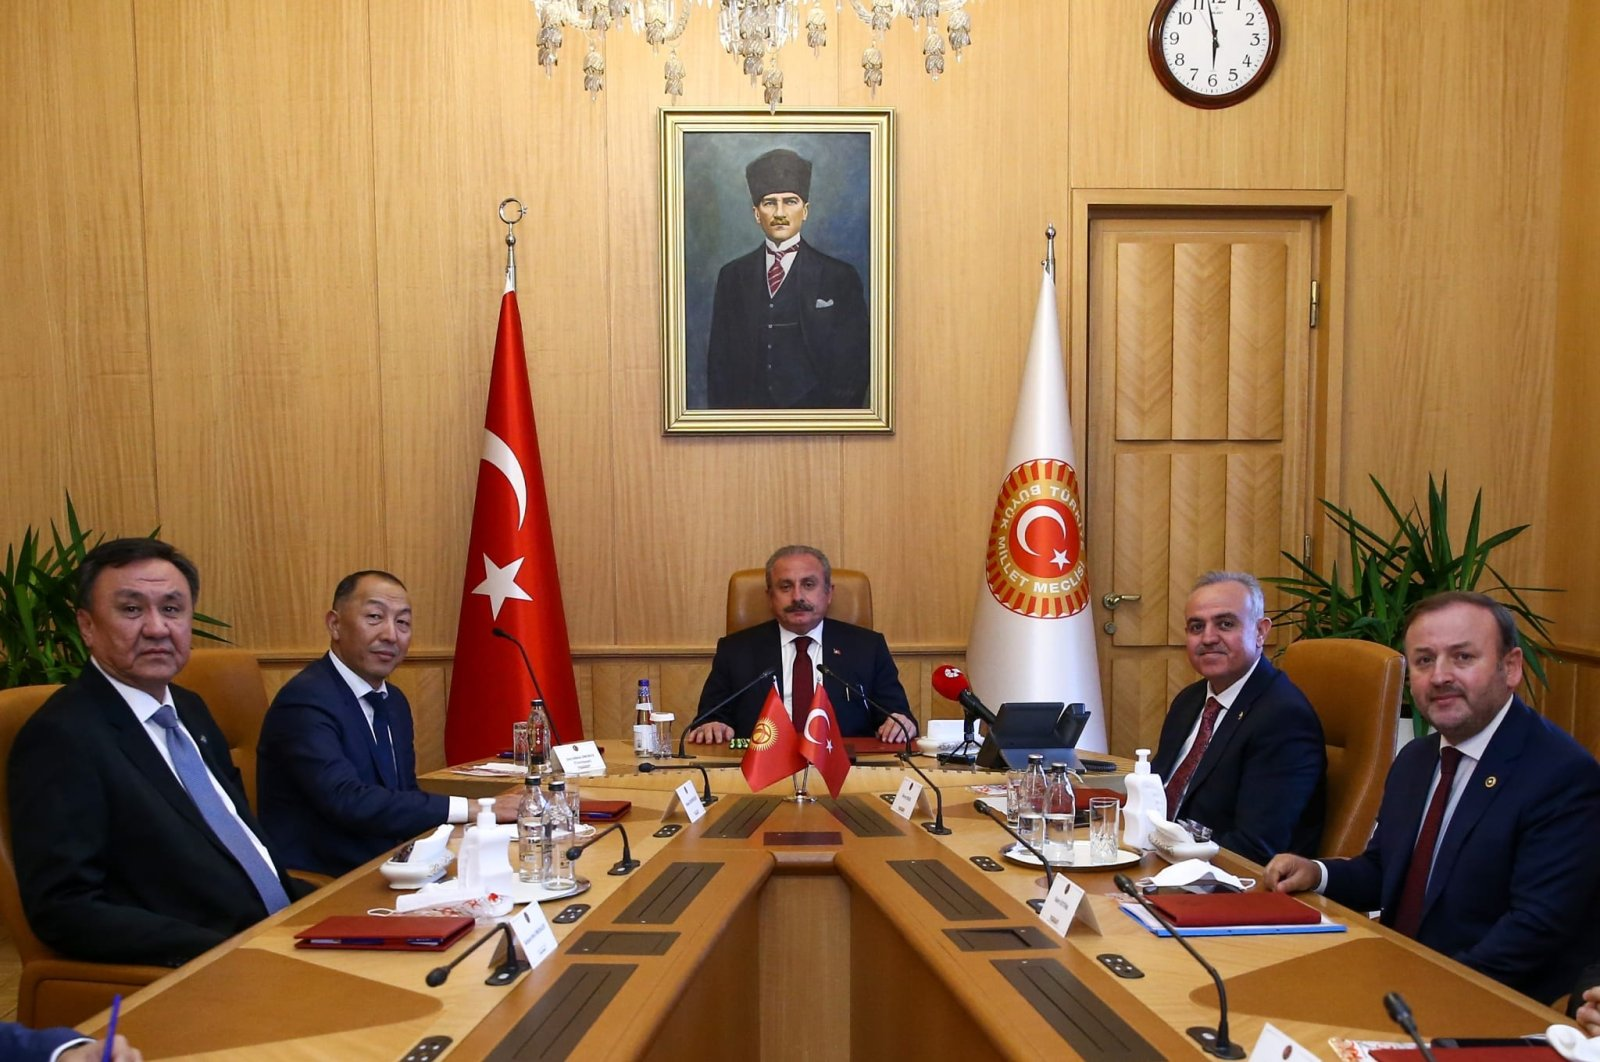 Parliament Speaker Mustafa Şentop receives Kyrgyzstan's Energy and Industry Minister Doskul Bekmurzaev and his delegation in the capital Ankara, Turkey, Oct. 5, 2021. (AA Photo)